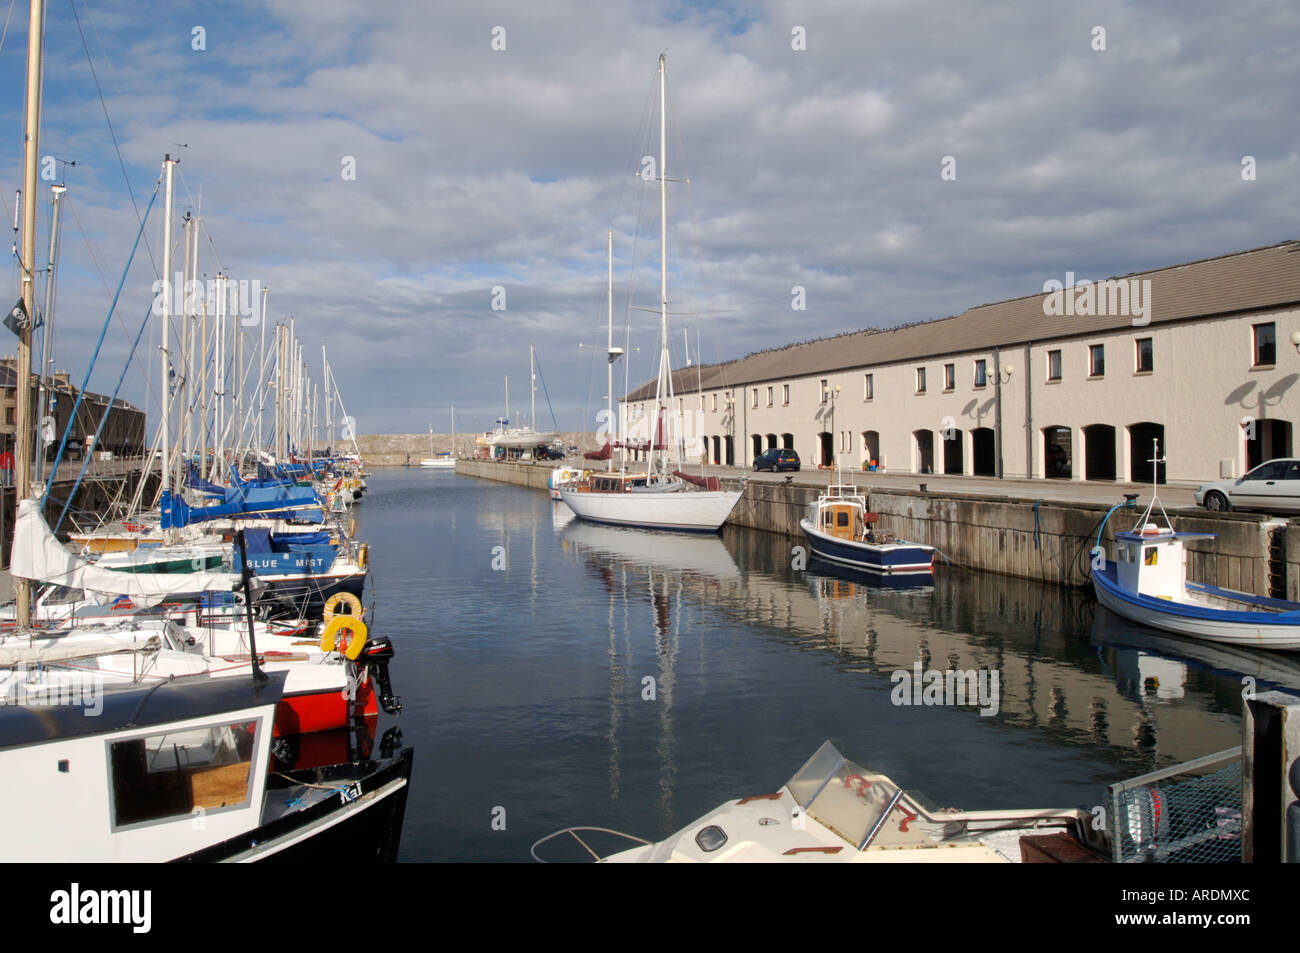 Lossiemouth on the Moray Firth offers good berthing for local leisure boats.   XPL 3619-350 - Stock Image